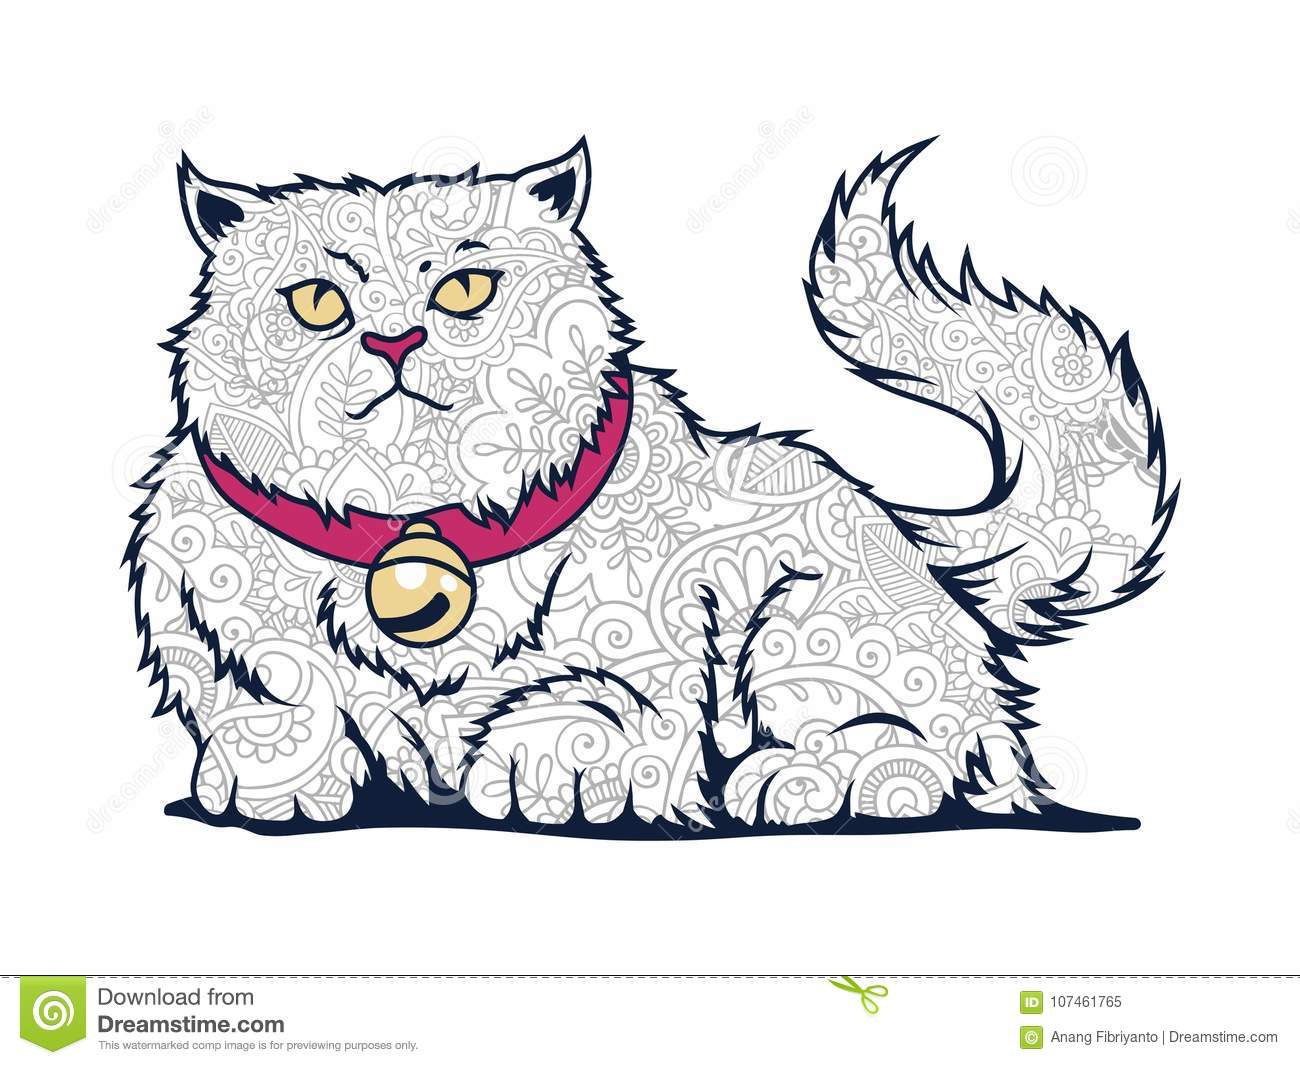 hand drawn cat doodle adult stress release coloring page isolated cat white background hand drawn cat doodle adult